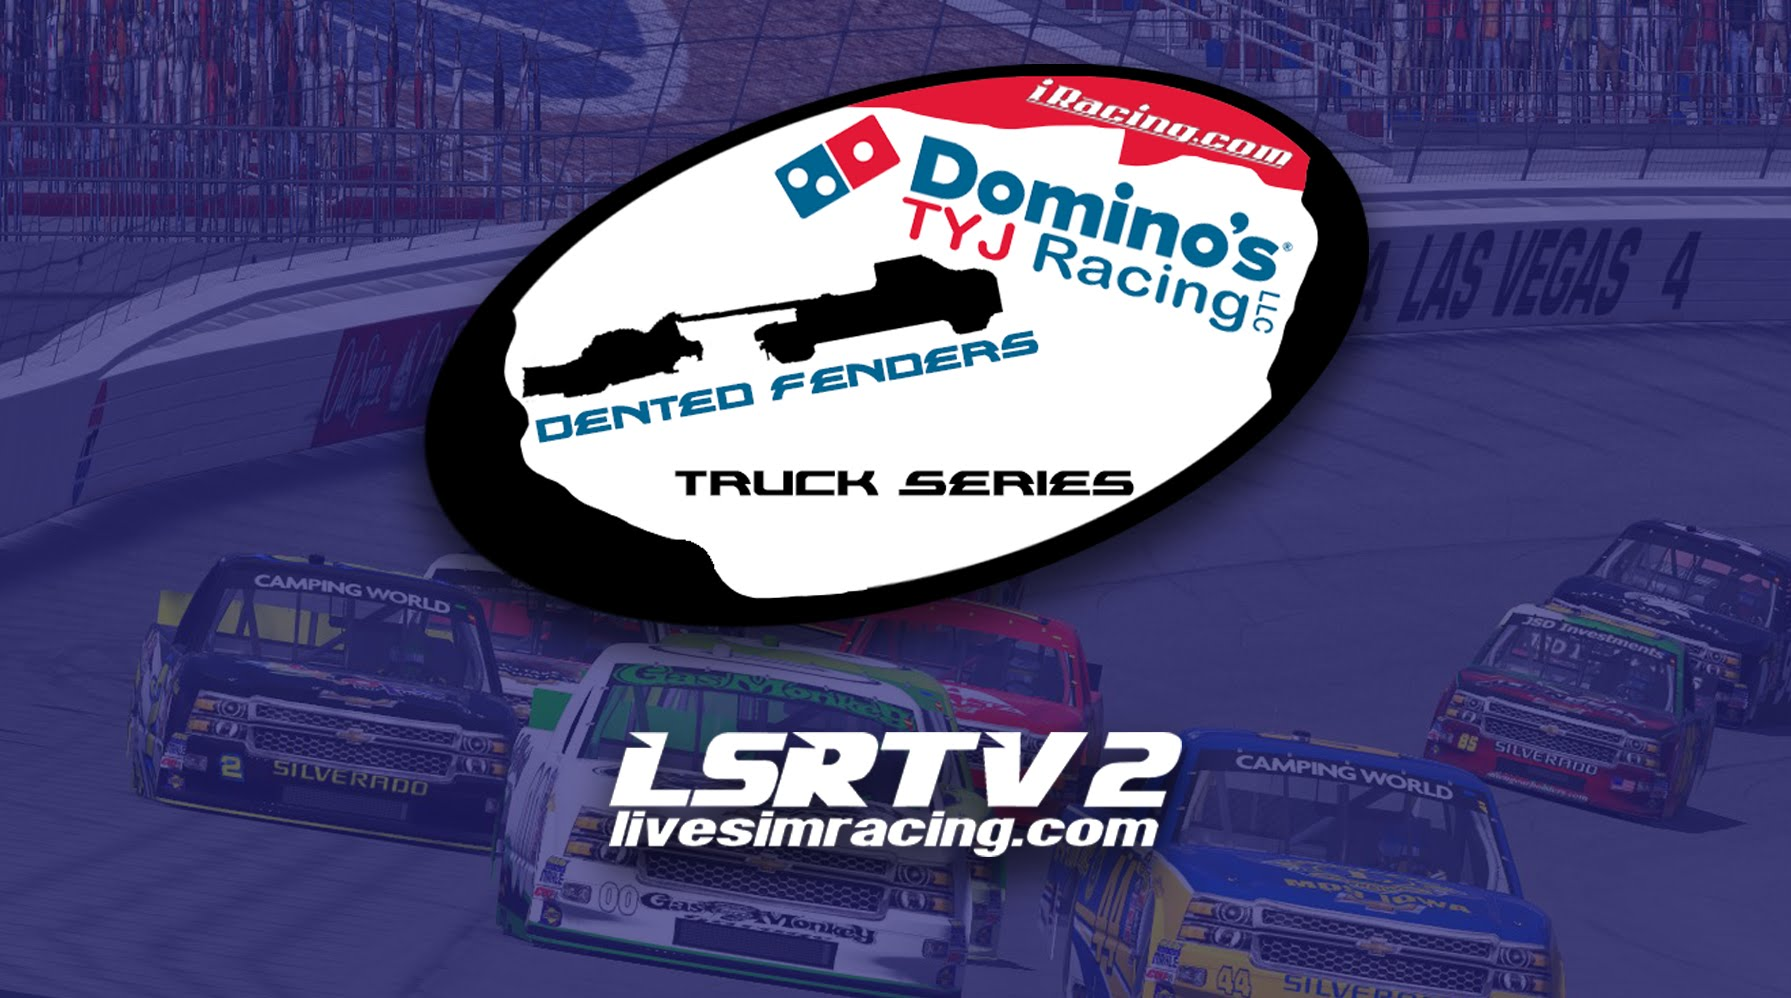 Domino's TYJ Dented Fenders Truck Series